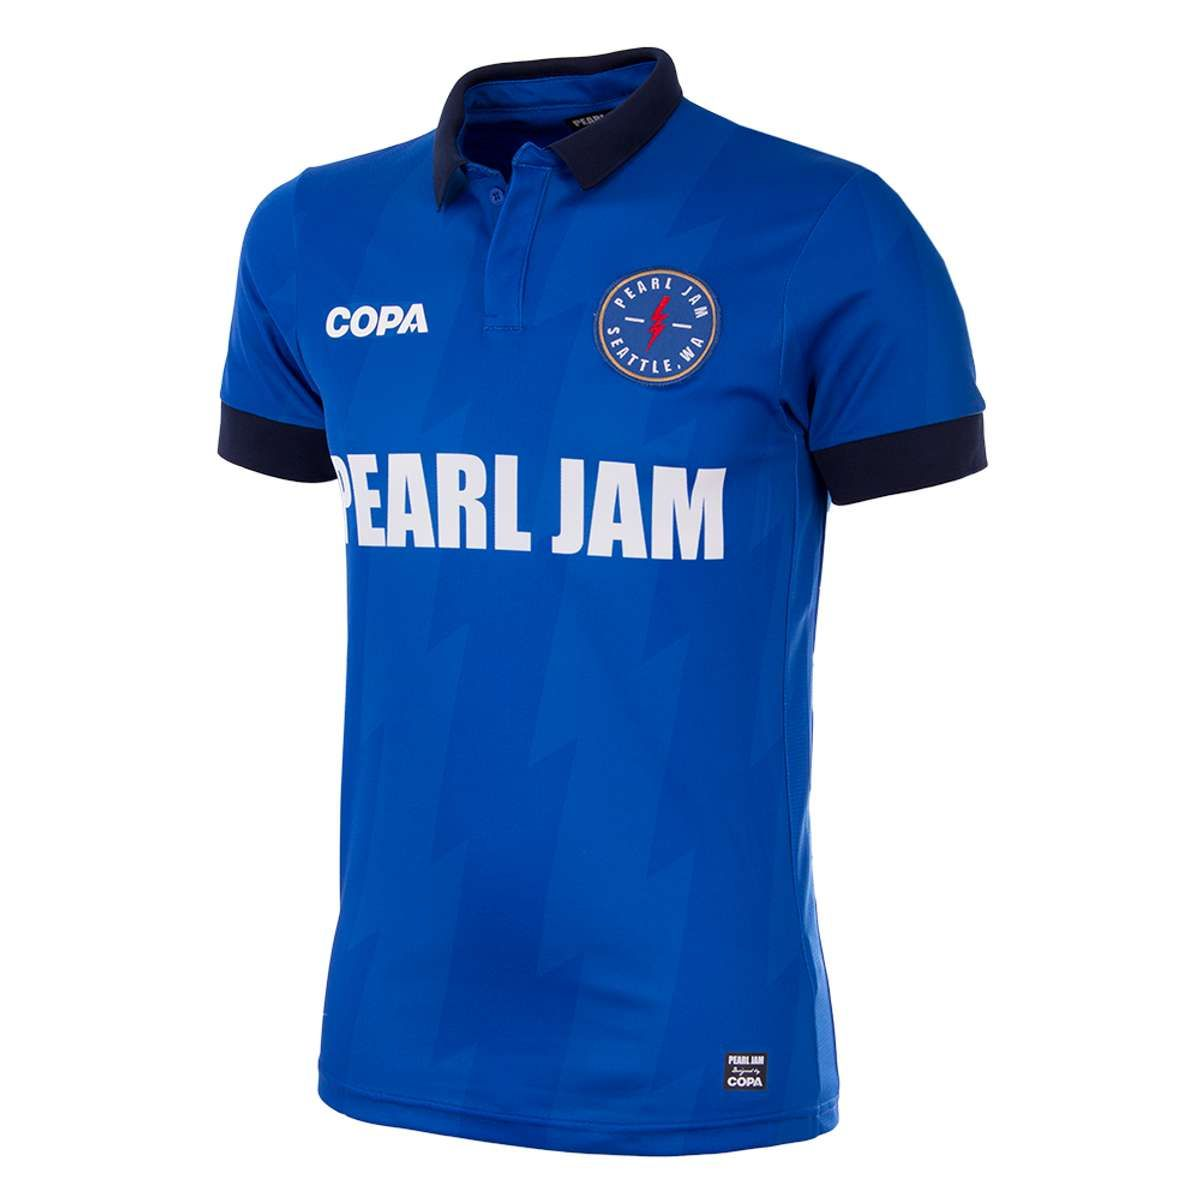 France – Soccer Shirt - Pearl Jam